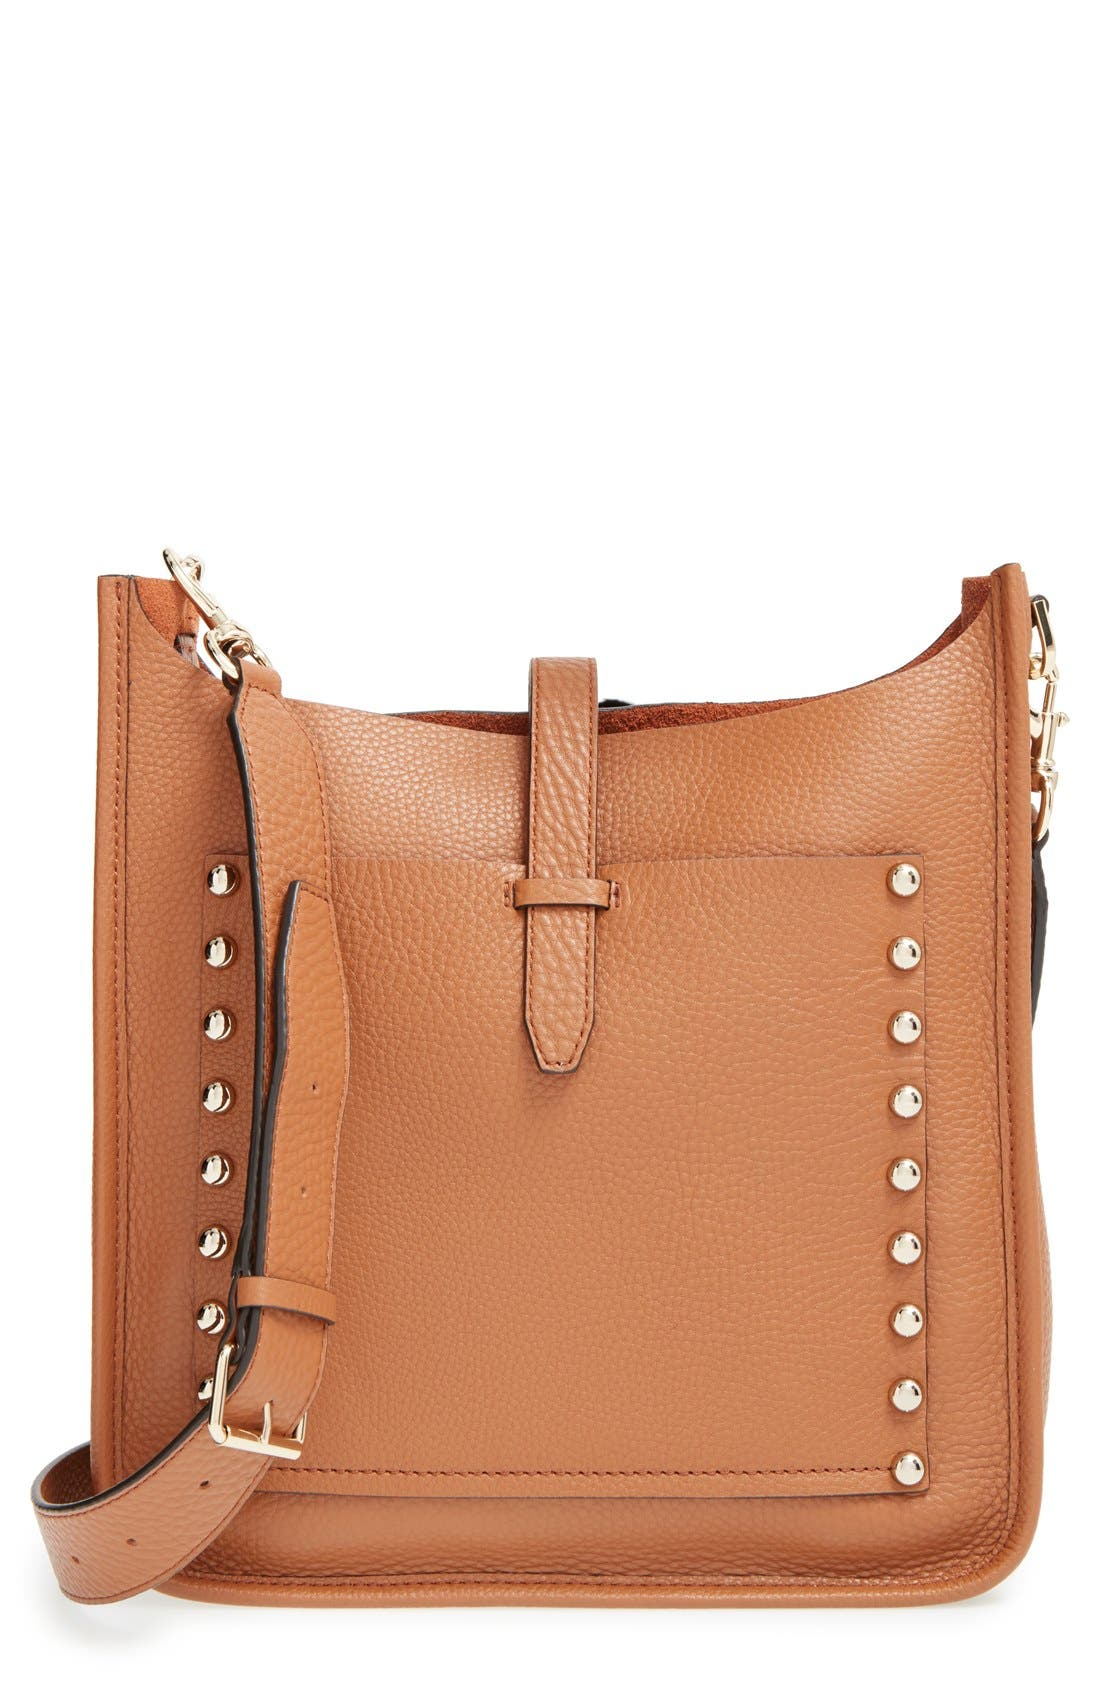 Alternate Image 1 Selected - Rebecca Minkoff Unlined Feed Bag